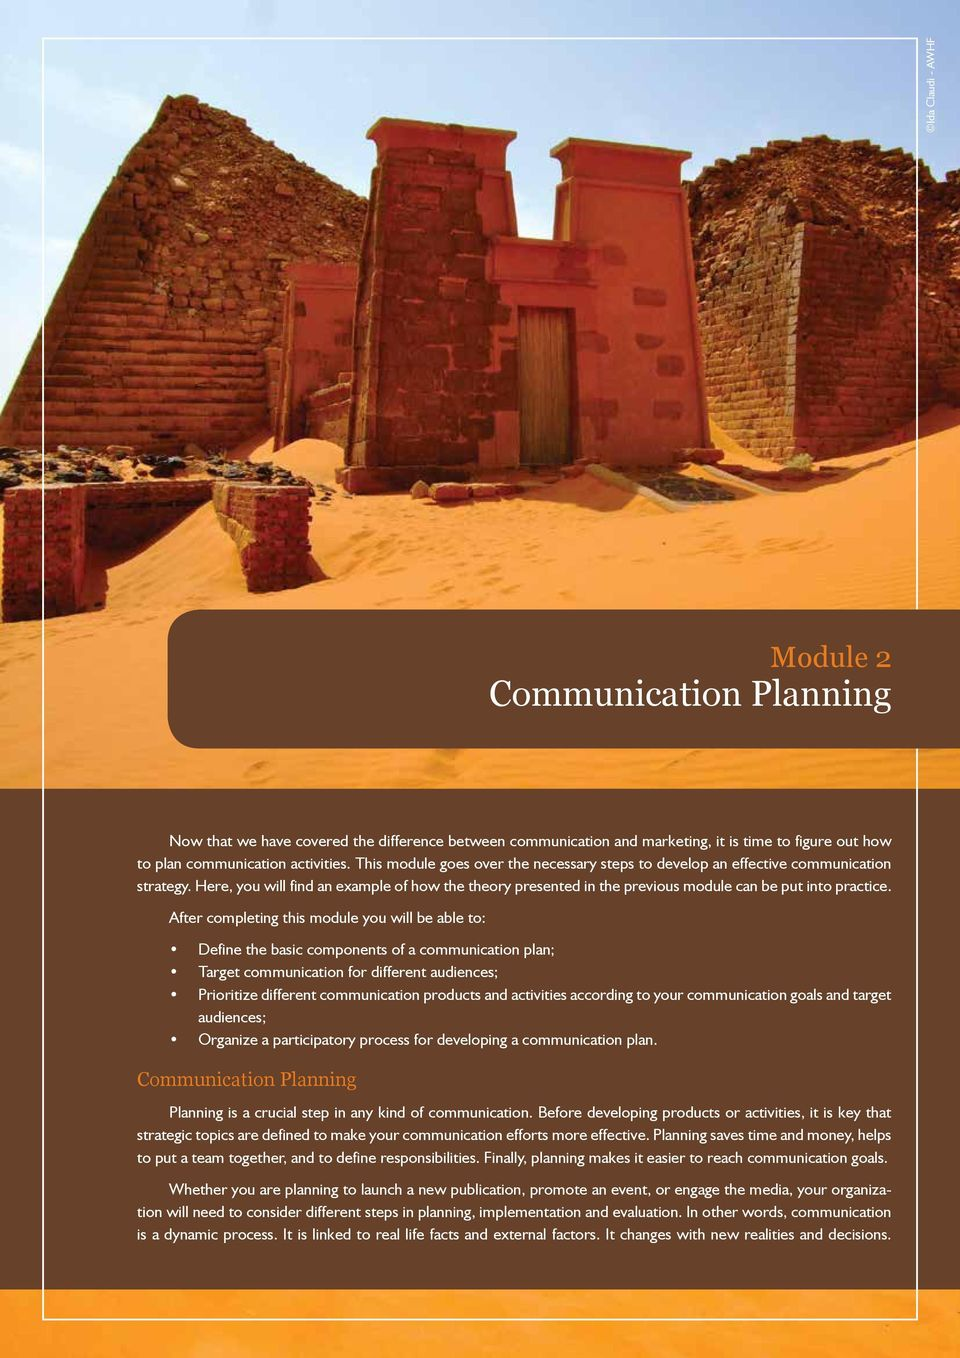 After completing this module you will be able to: Define the basic components of a communication plan; Target communication for different audiences; Prioritize different communication products and